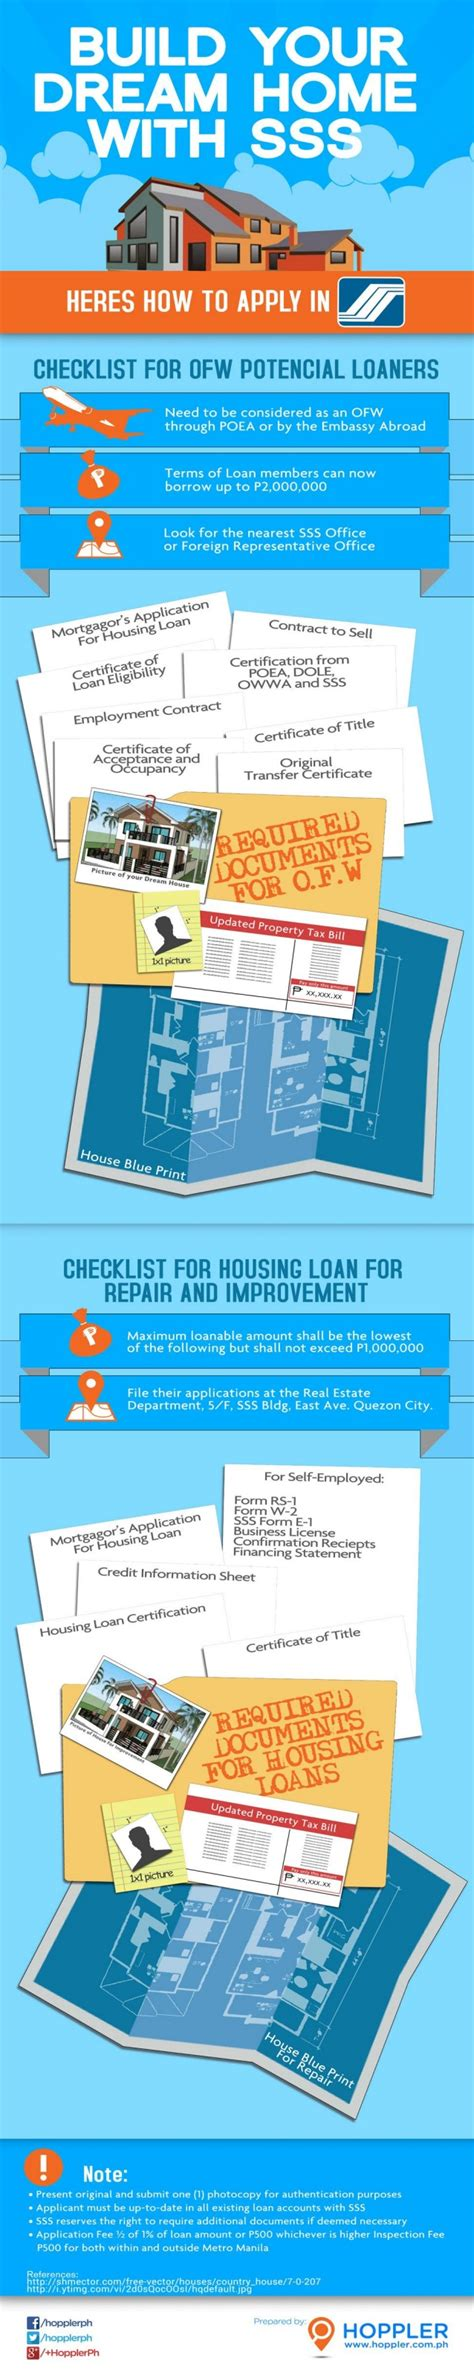 sss housing loan how to apply for an sss housing loan the ultimate guide